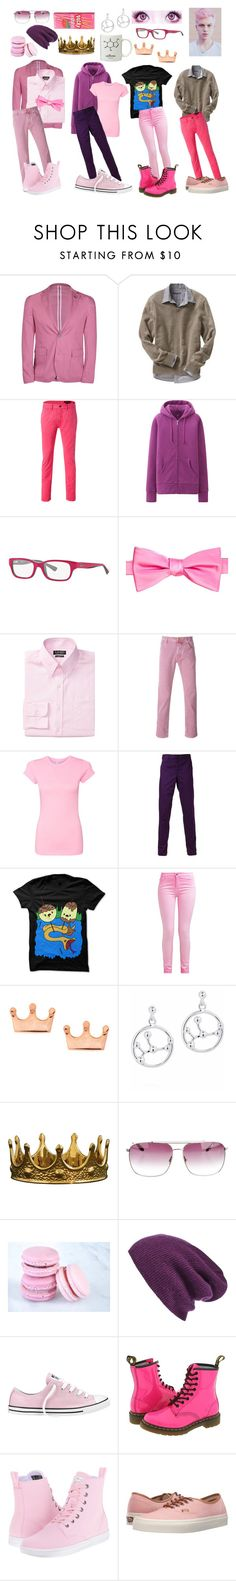 """Adventure Time: Prince Gumball"" by cartoonvillian ❤ liked on Polyvore featuring DKNY, Old Navy, Marc Jacobs, Uniqlo, Ray-Ban, Saddlebred, Lauren Ralph Lauren, Jacob Cohёn, Comme des Garçons Homme and Mminimal"